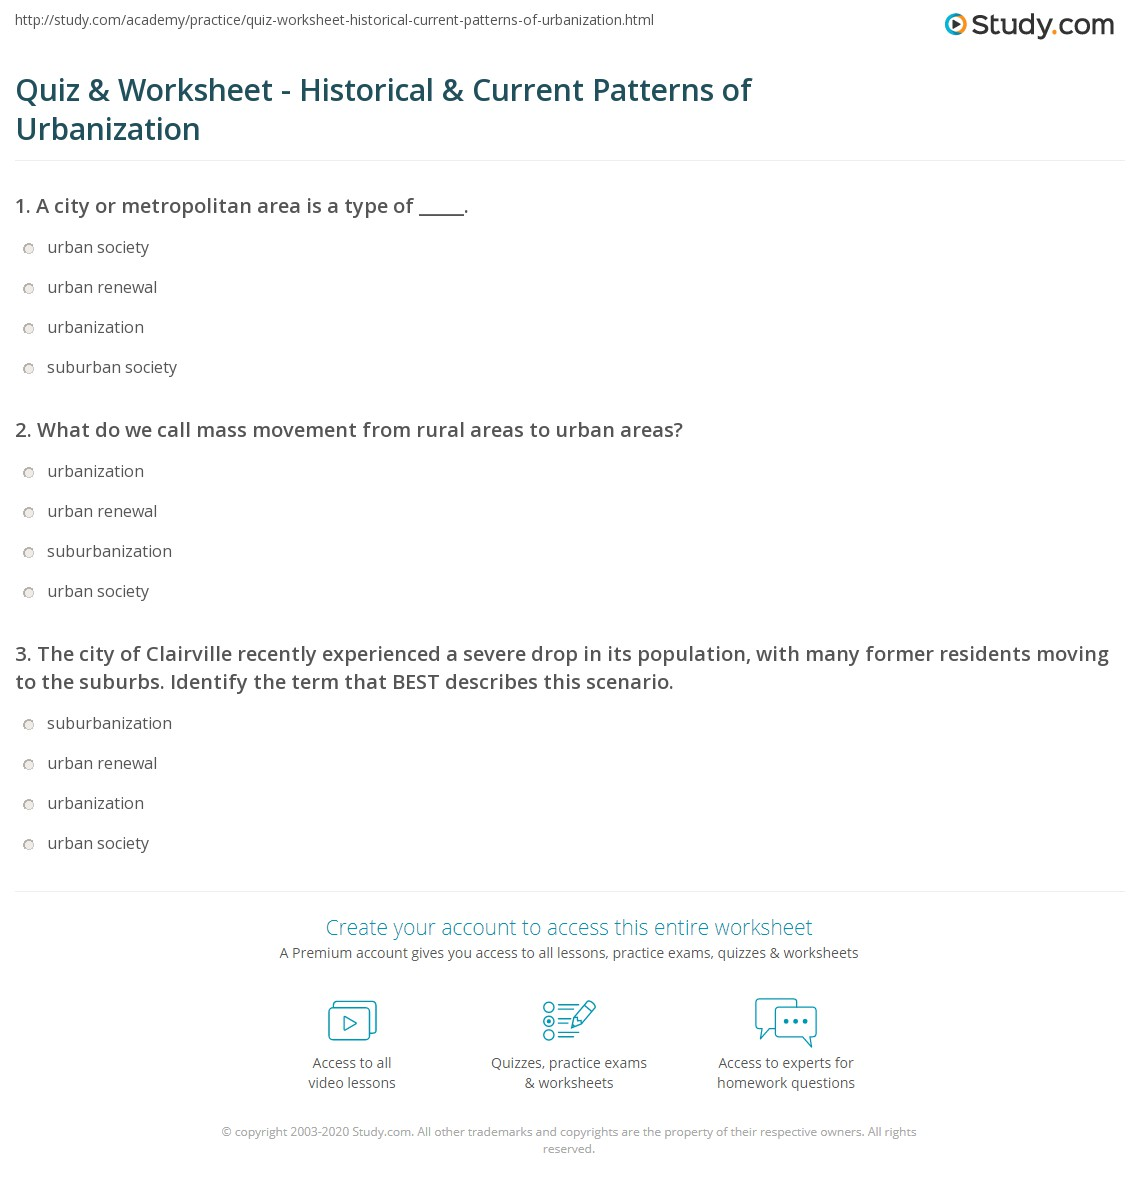 worksheet Mass Movement Worksheet quiz worksheet historical current patterns of urbanization what do we call mass movement from rural areas to urban areas